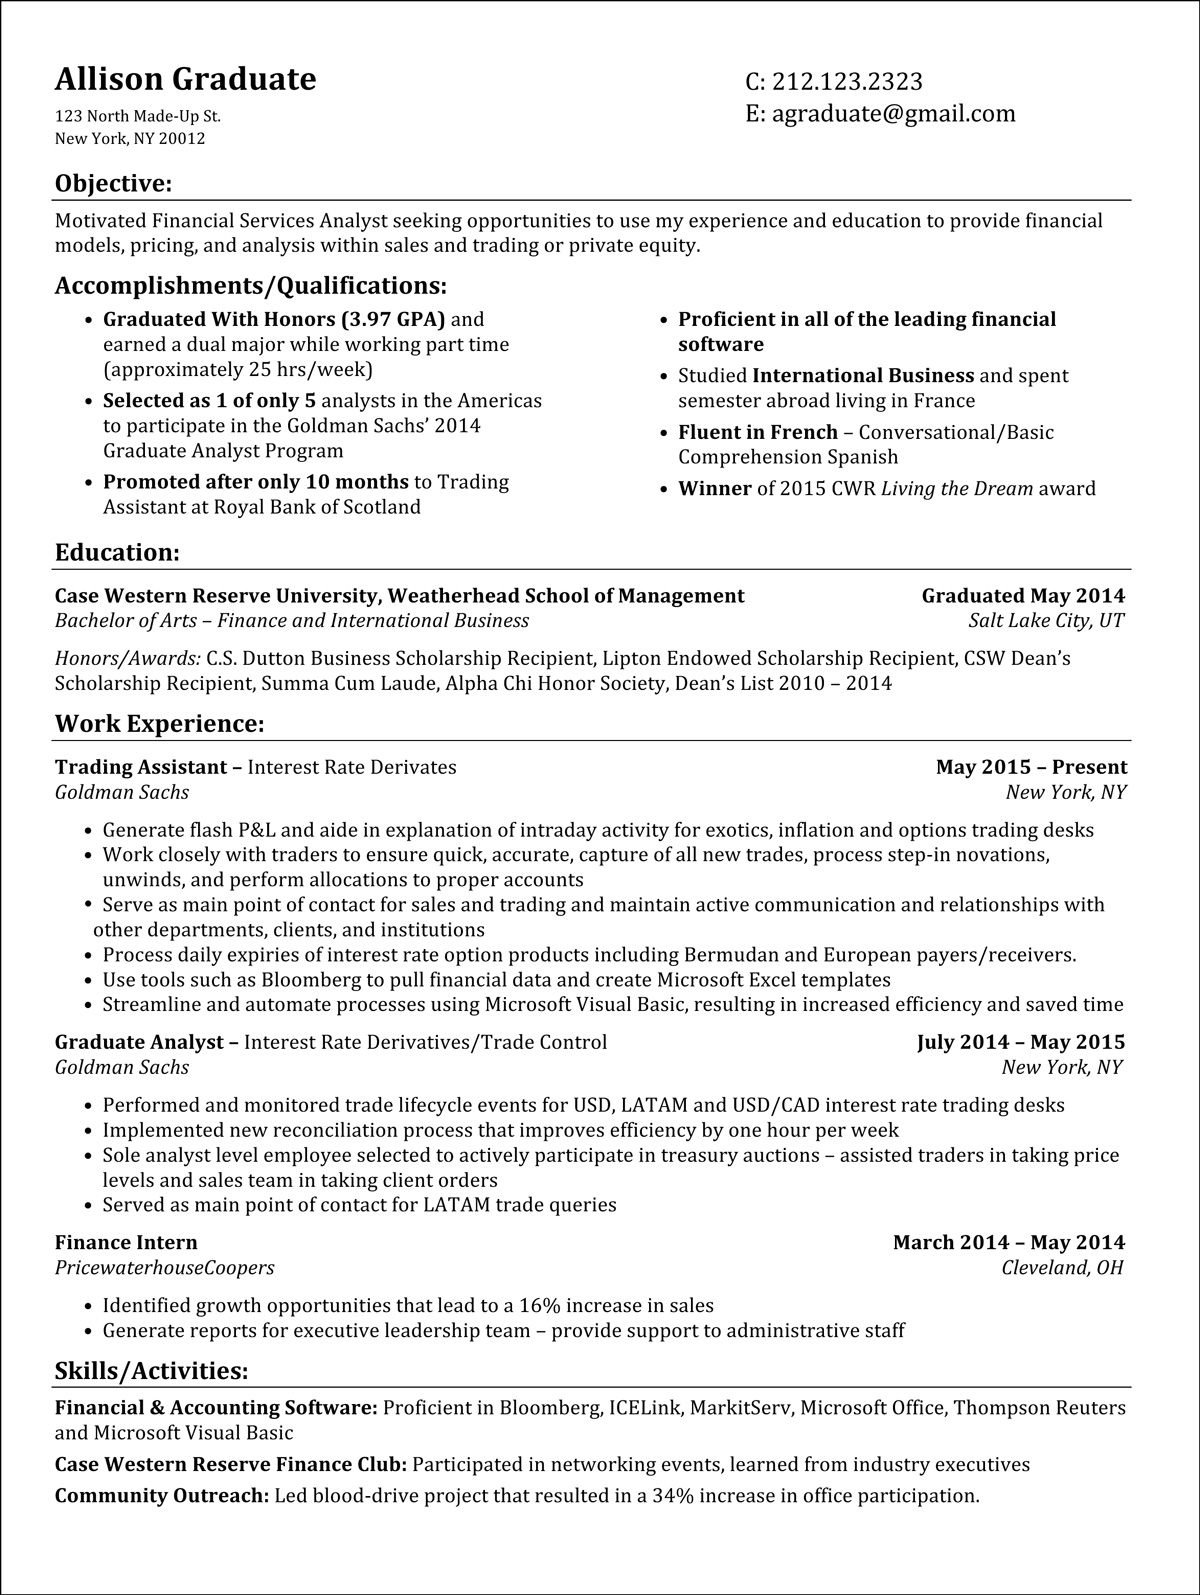 Recent College Graduate Resume Cover Letter Samples Design Synthesis